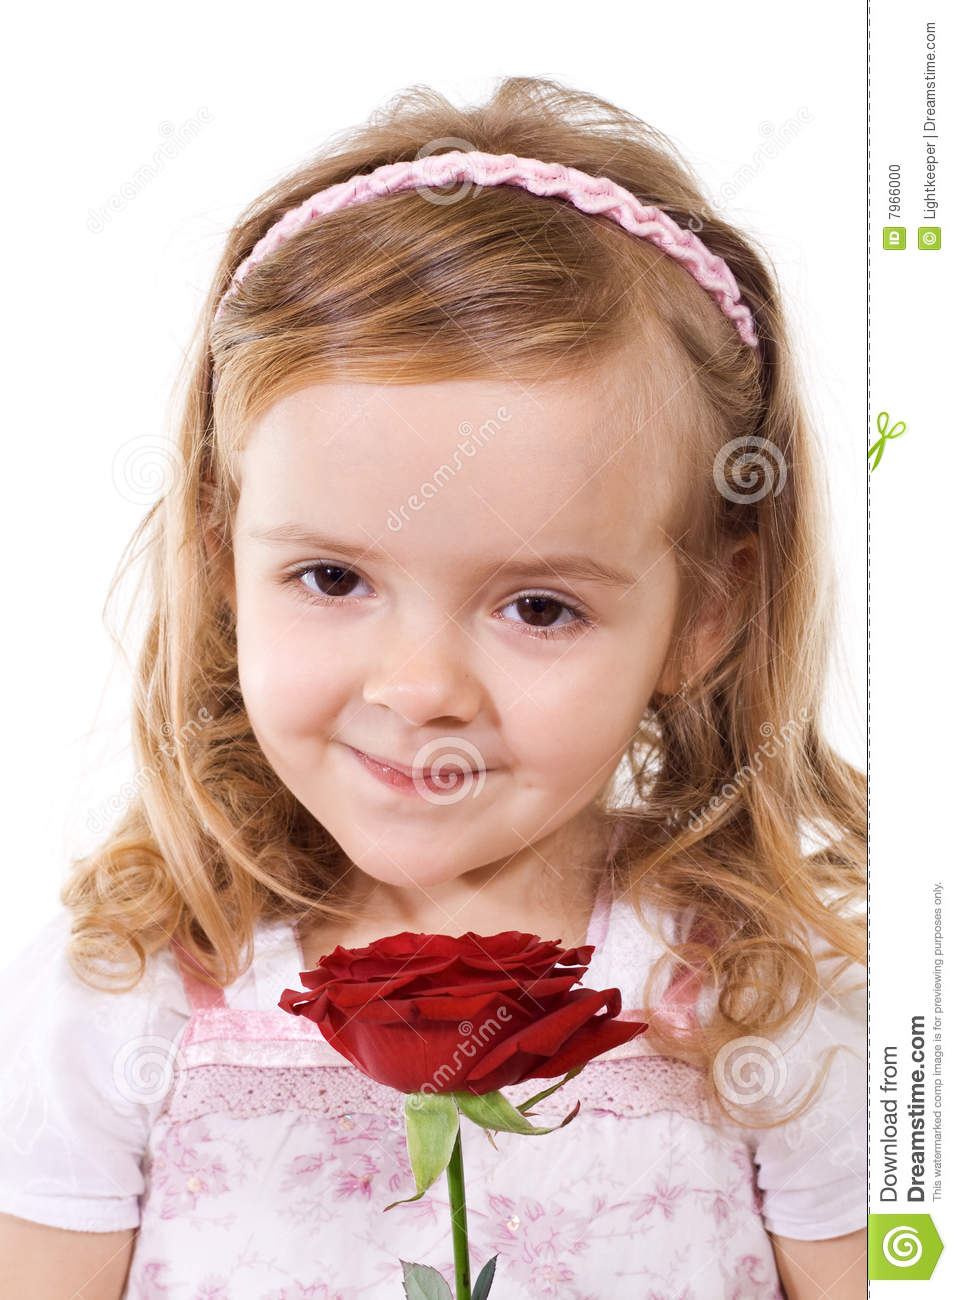 Happy Little Girl With Rose Stock Photo - Image: 7966000